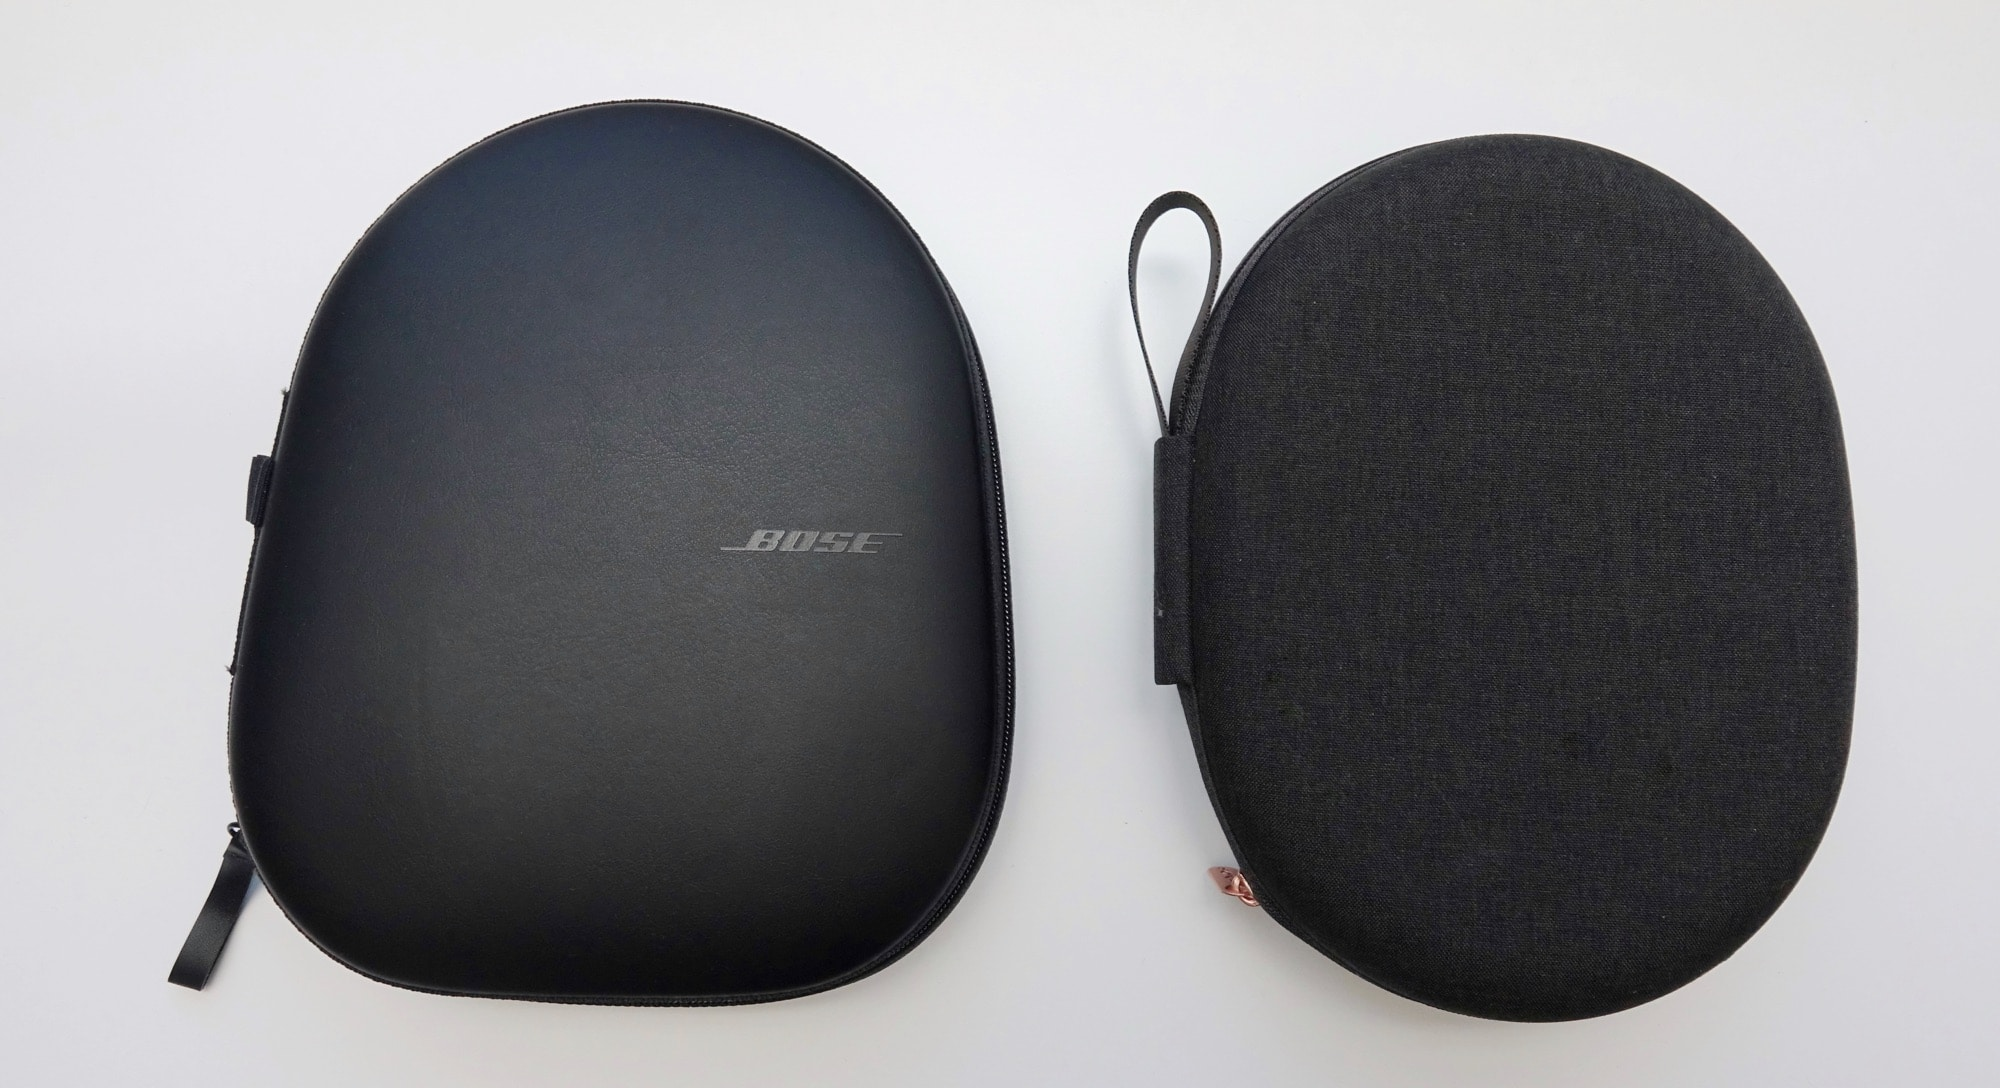 The cases for the Bose 700 and Sony WH-1000XM4, left and right, respectively.